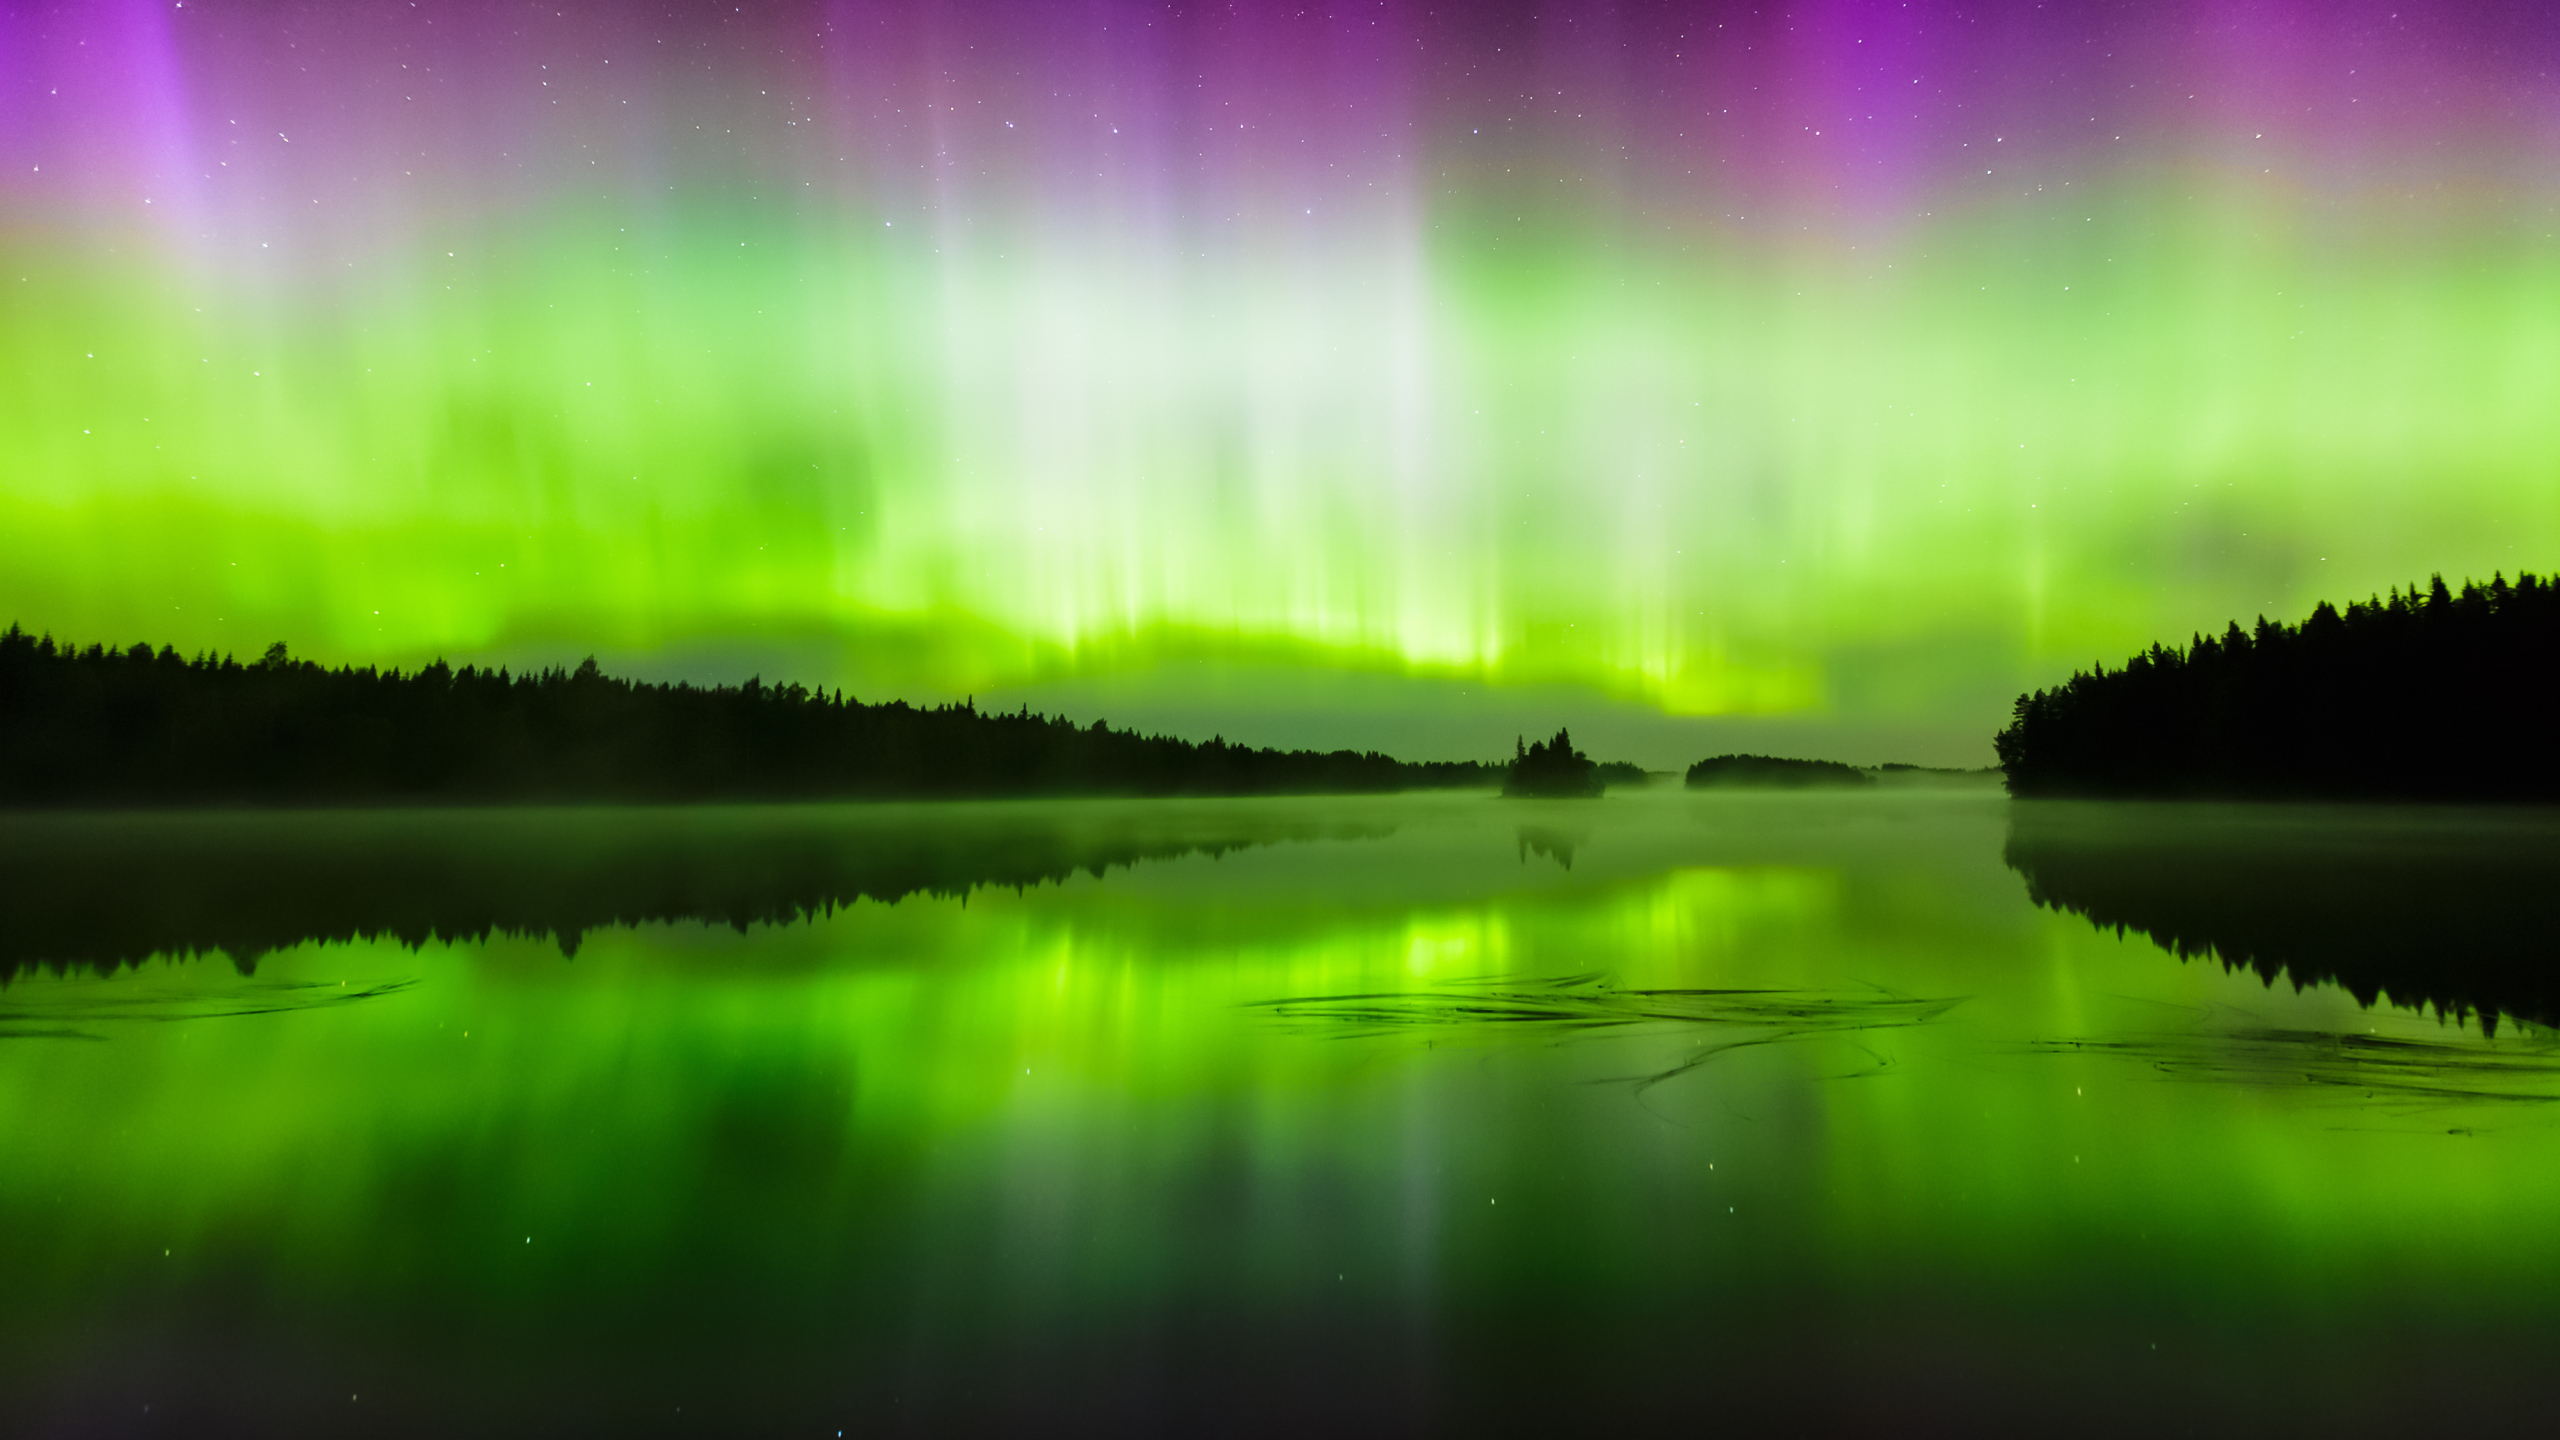 2560x1440 4k Aurora 1440p Resolution Wallpaper Hd Nature 4k Wallpapers Images Photos And Background